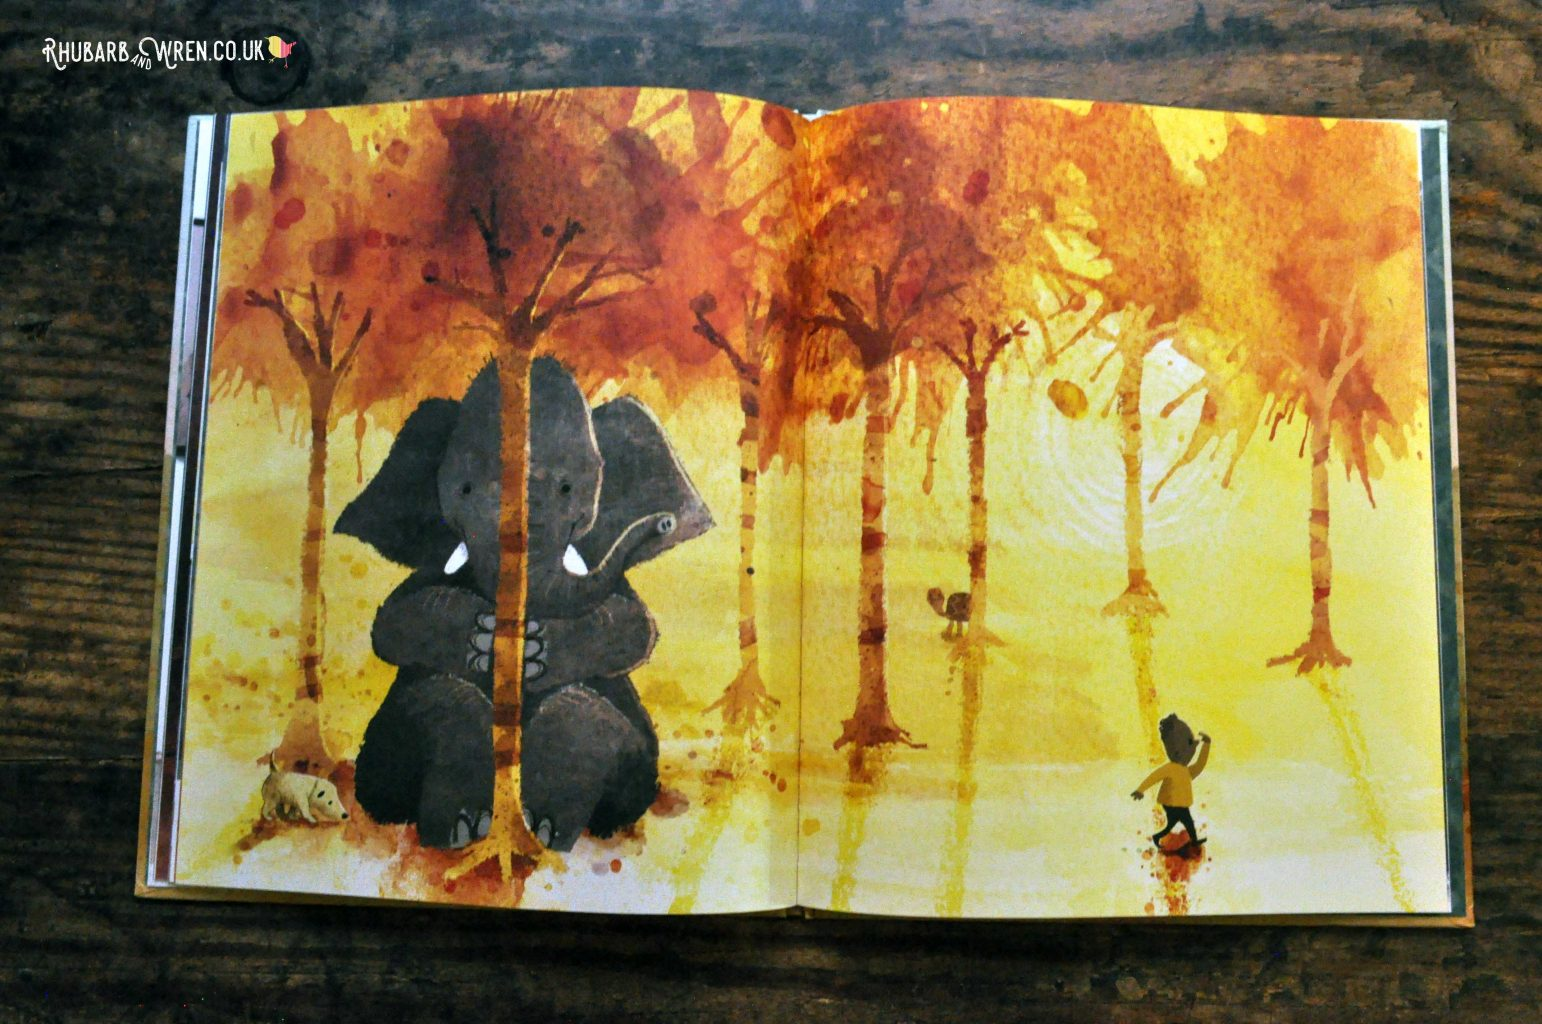 A page from 'Have you seen Elephant' by David Barrow, showing Elephant hiding behind a very thin tree while a boy looks for him.